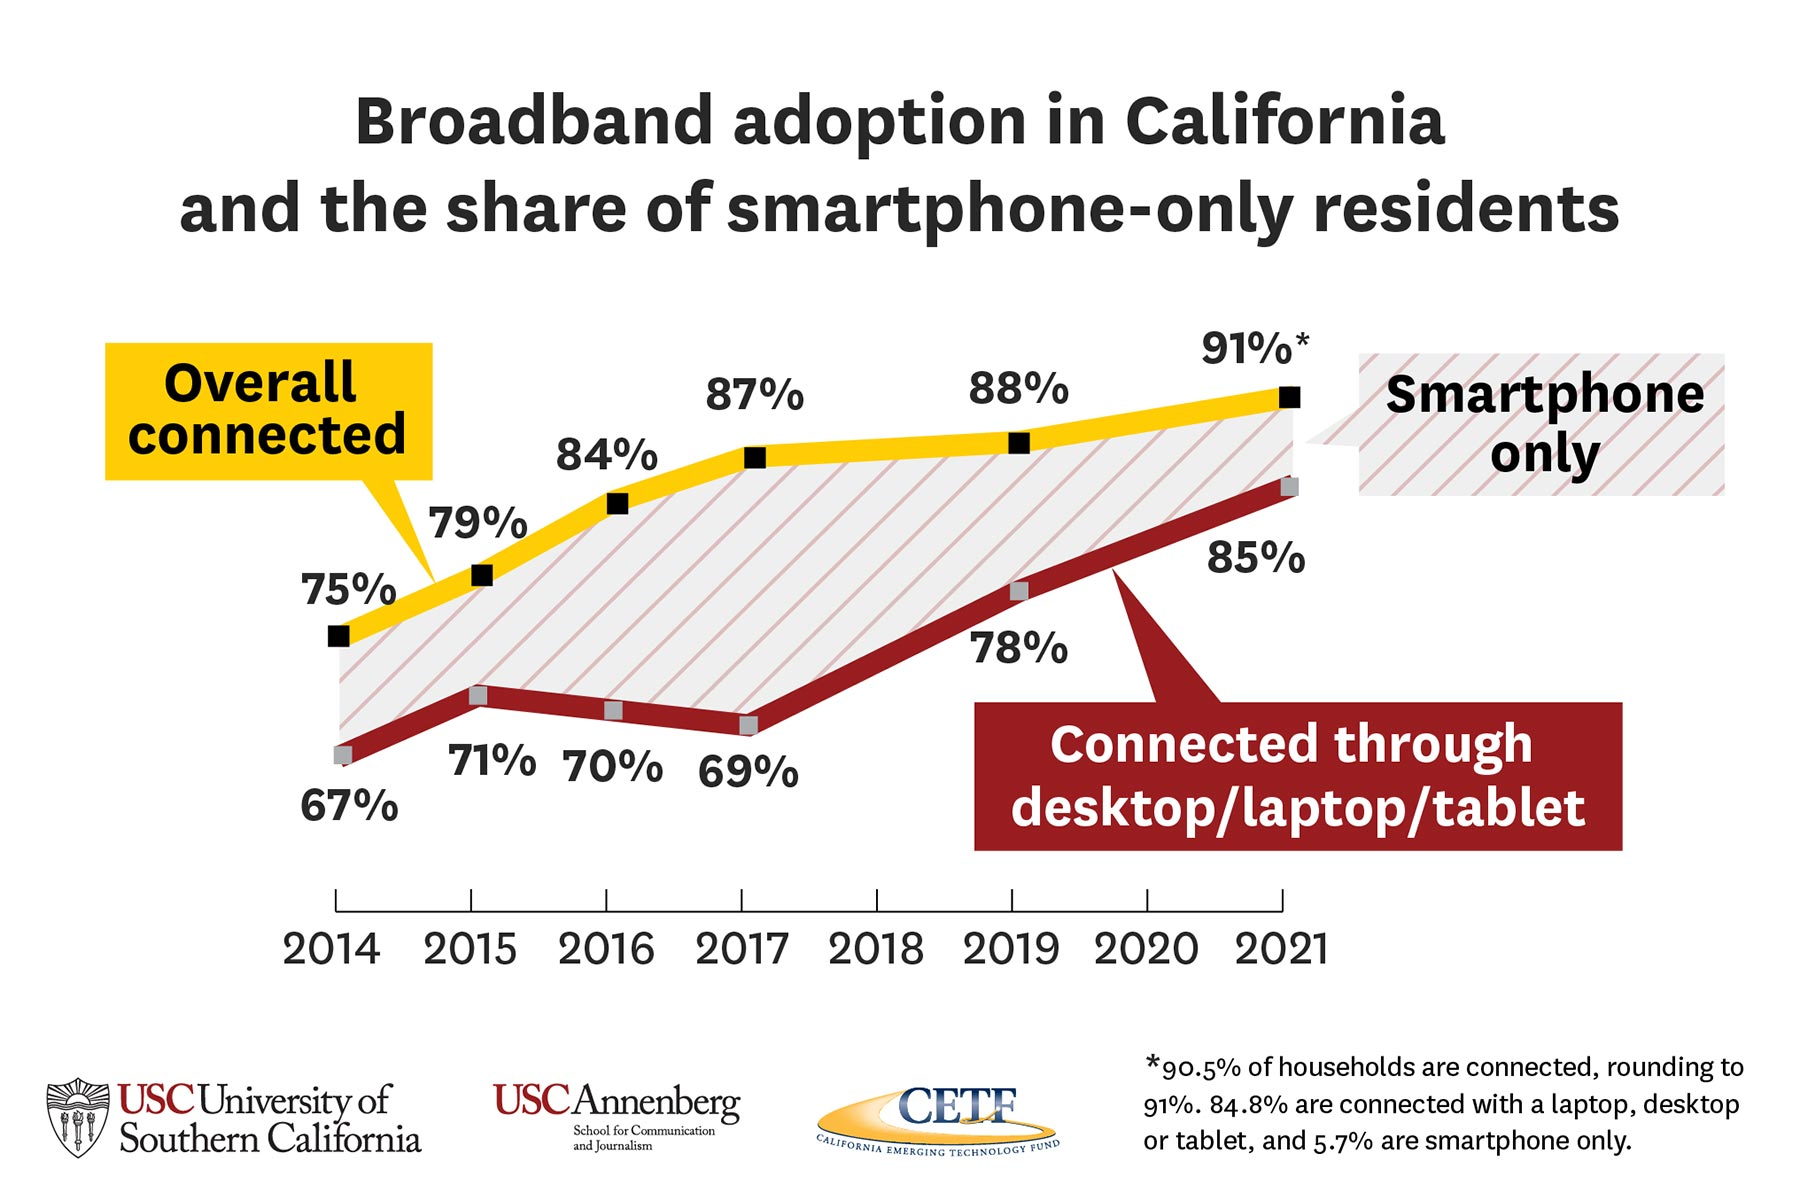 Broadband adoption in California and the share of smartphone-only residents